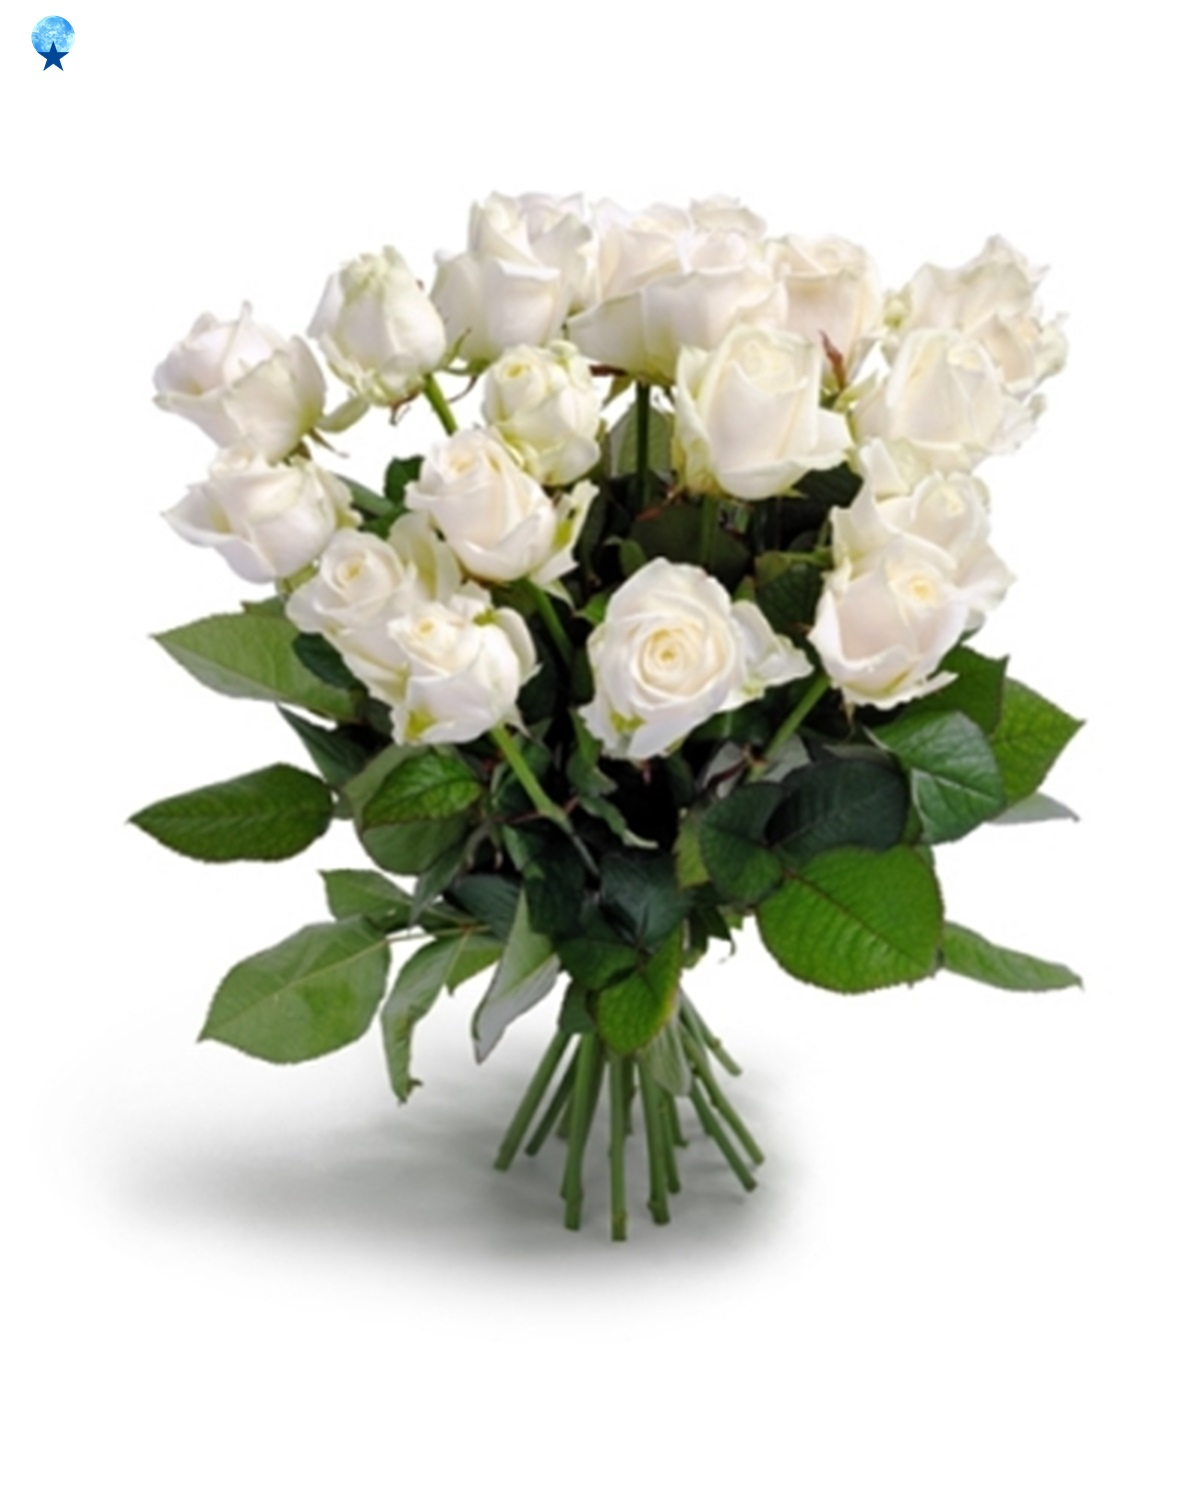 Hd Flowers White Roses Flowers Rose White Bunch Rose Blooms